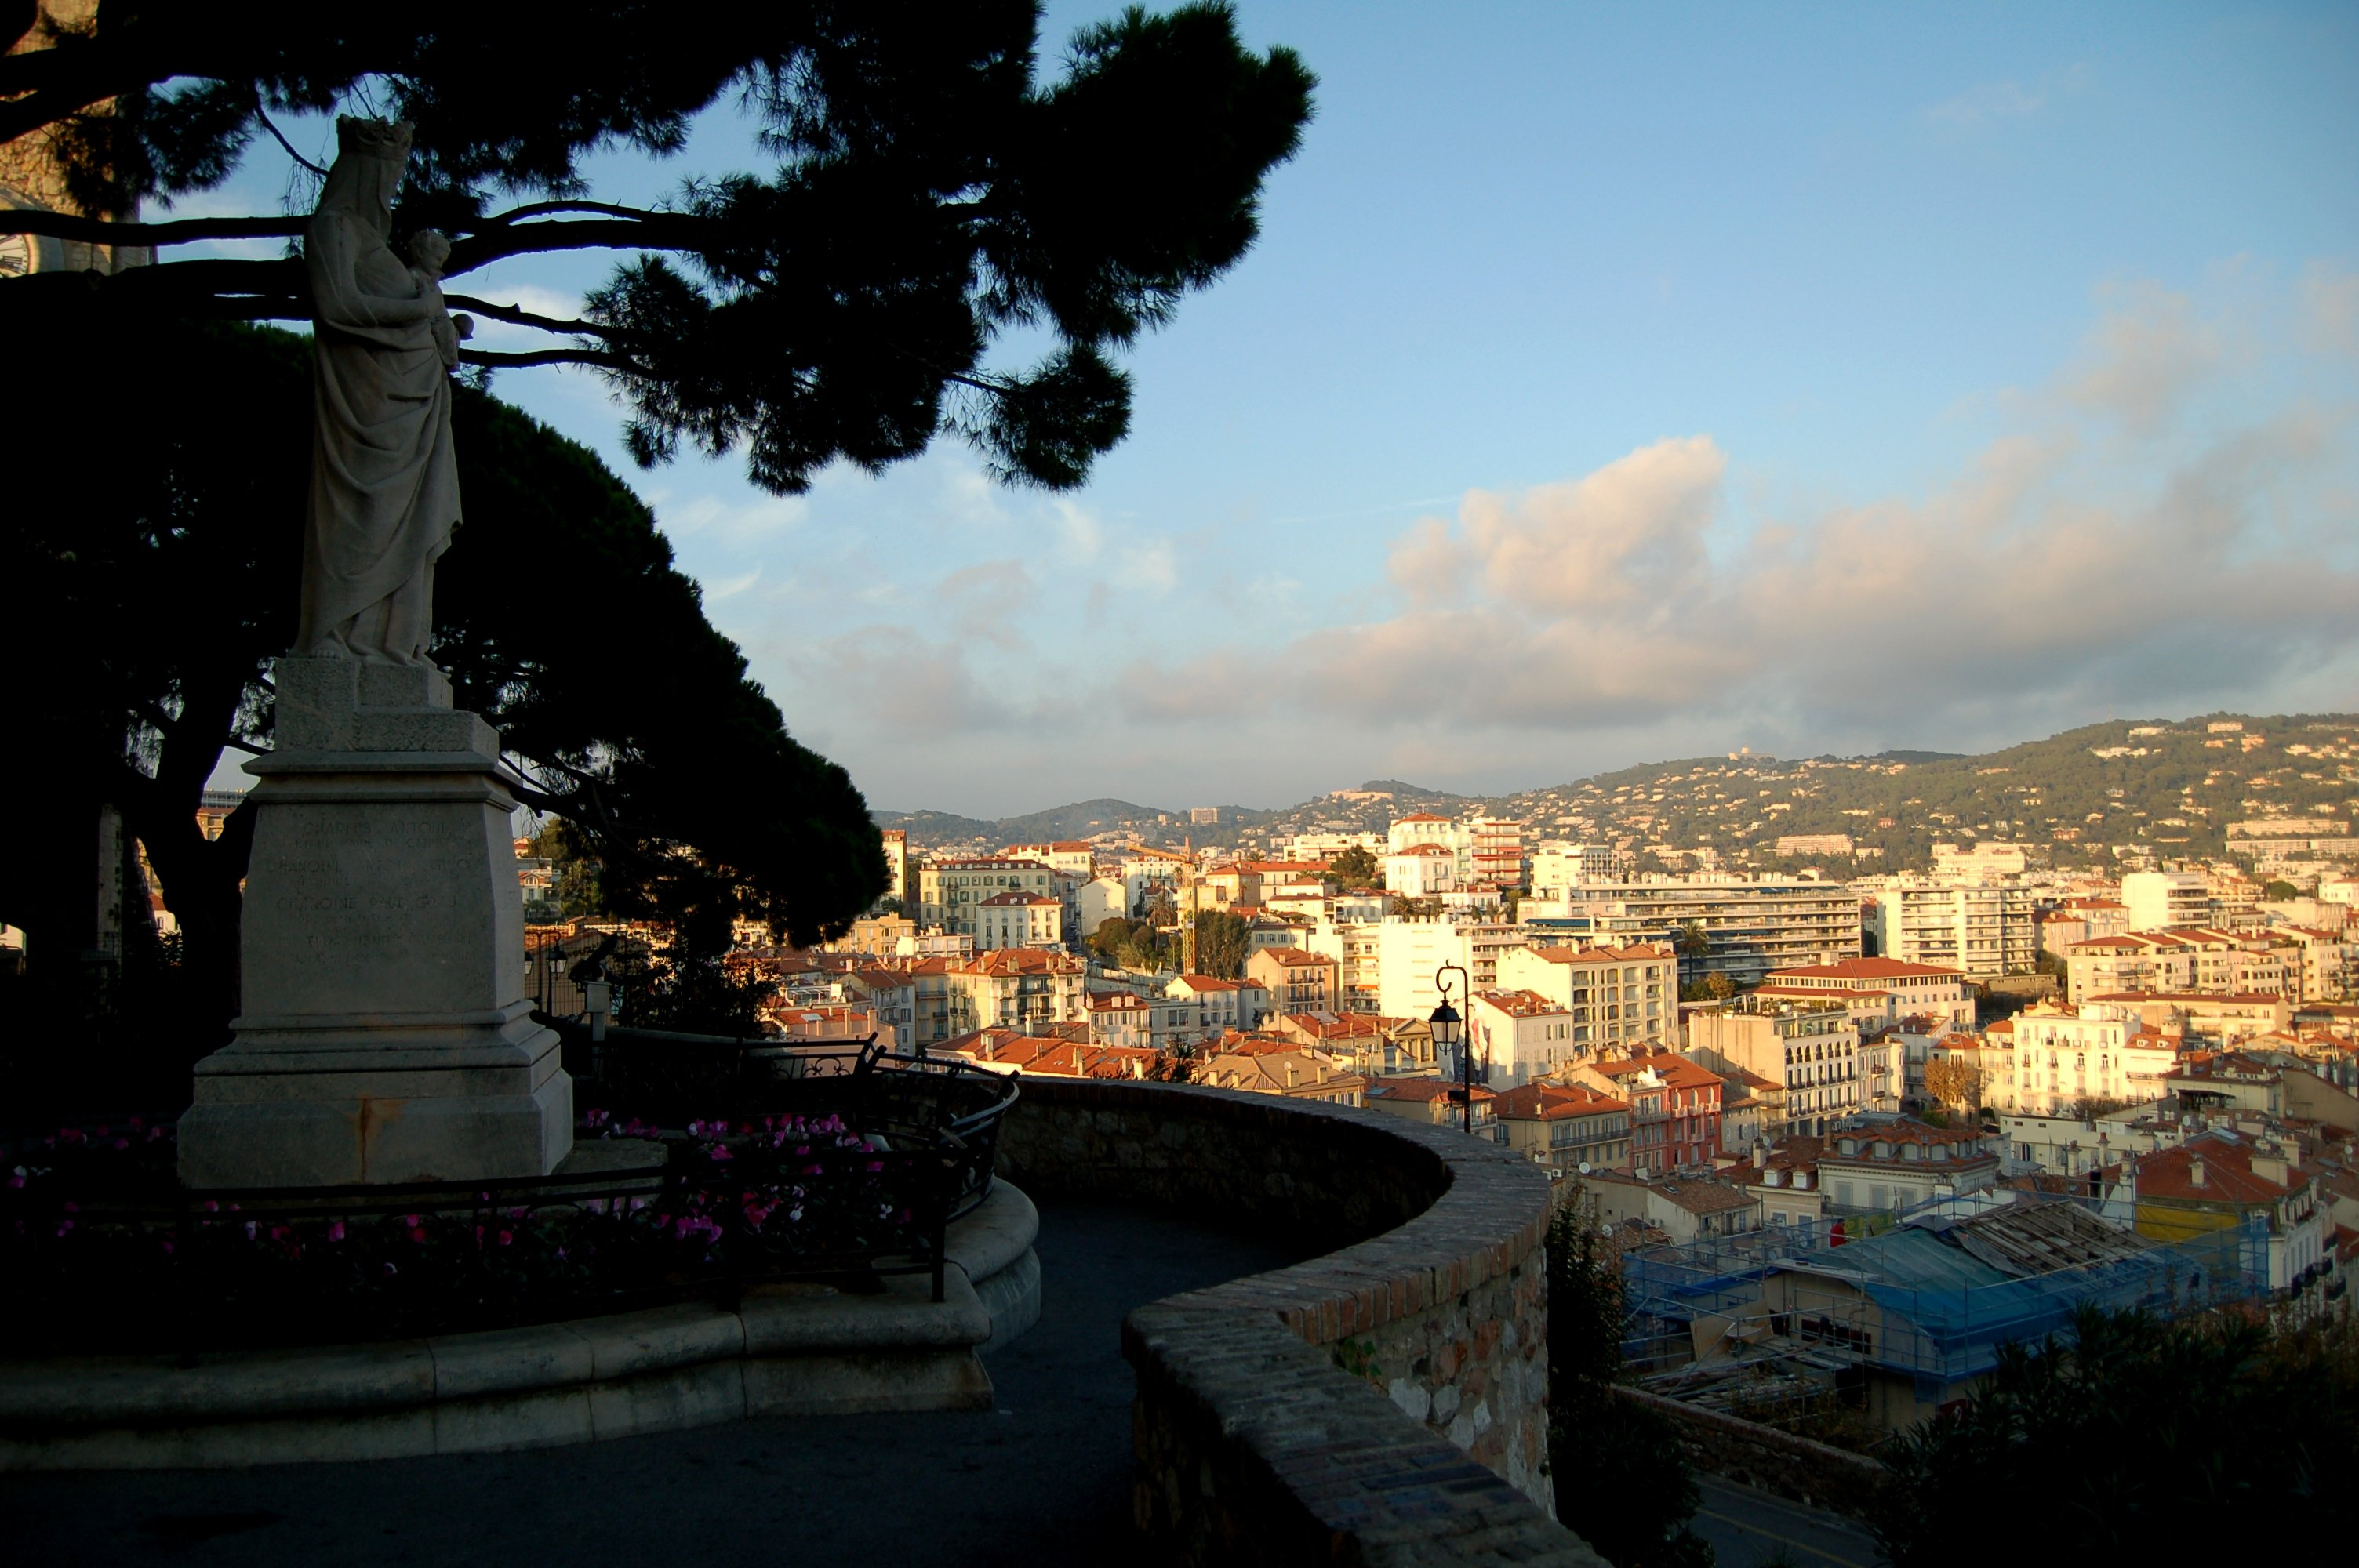 15 Beautiful Photos of Cannes, France - View over Cannes